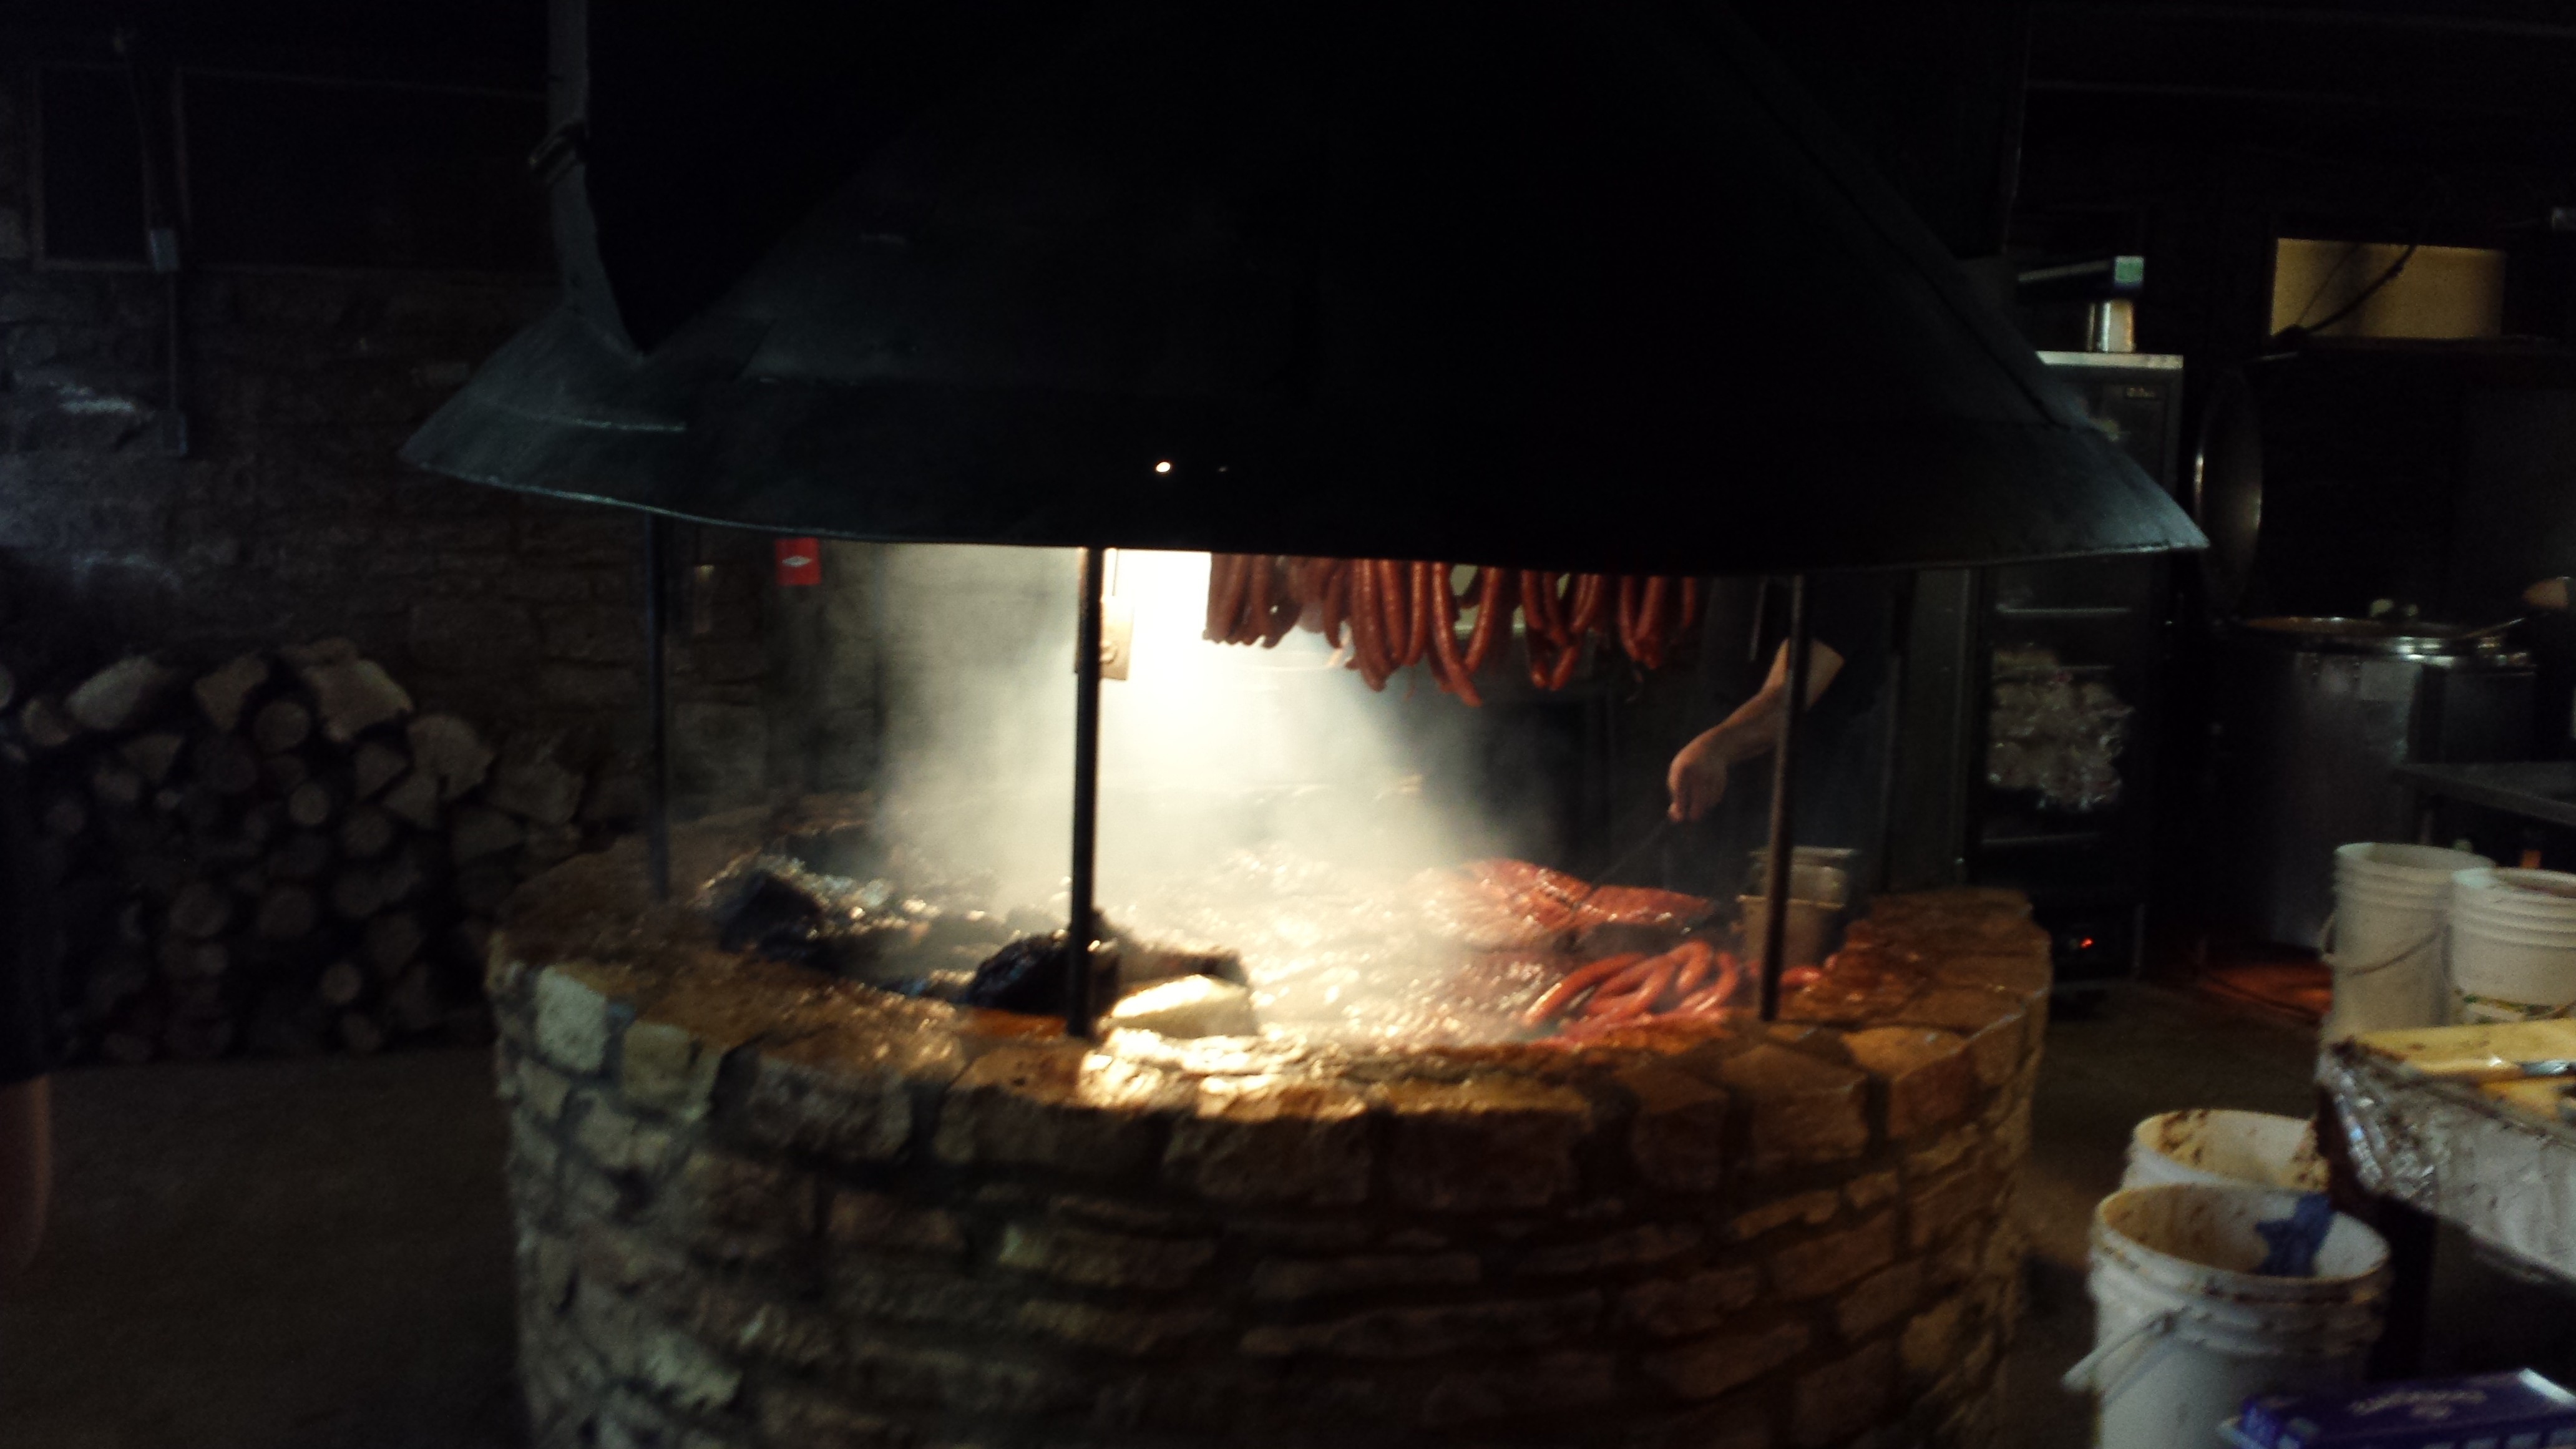 The pit inside the original Salt Lick building. Yum